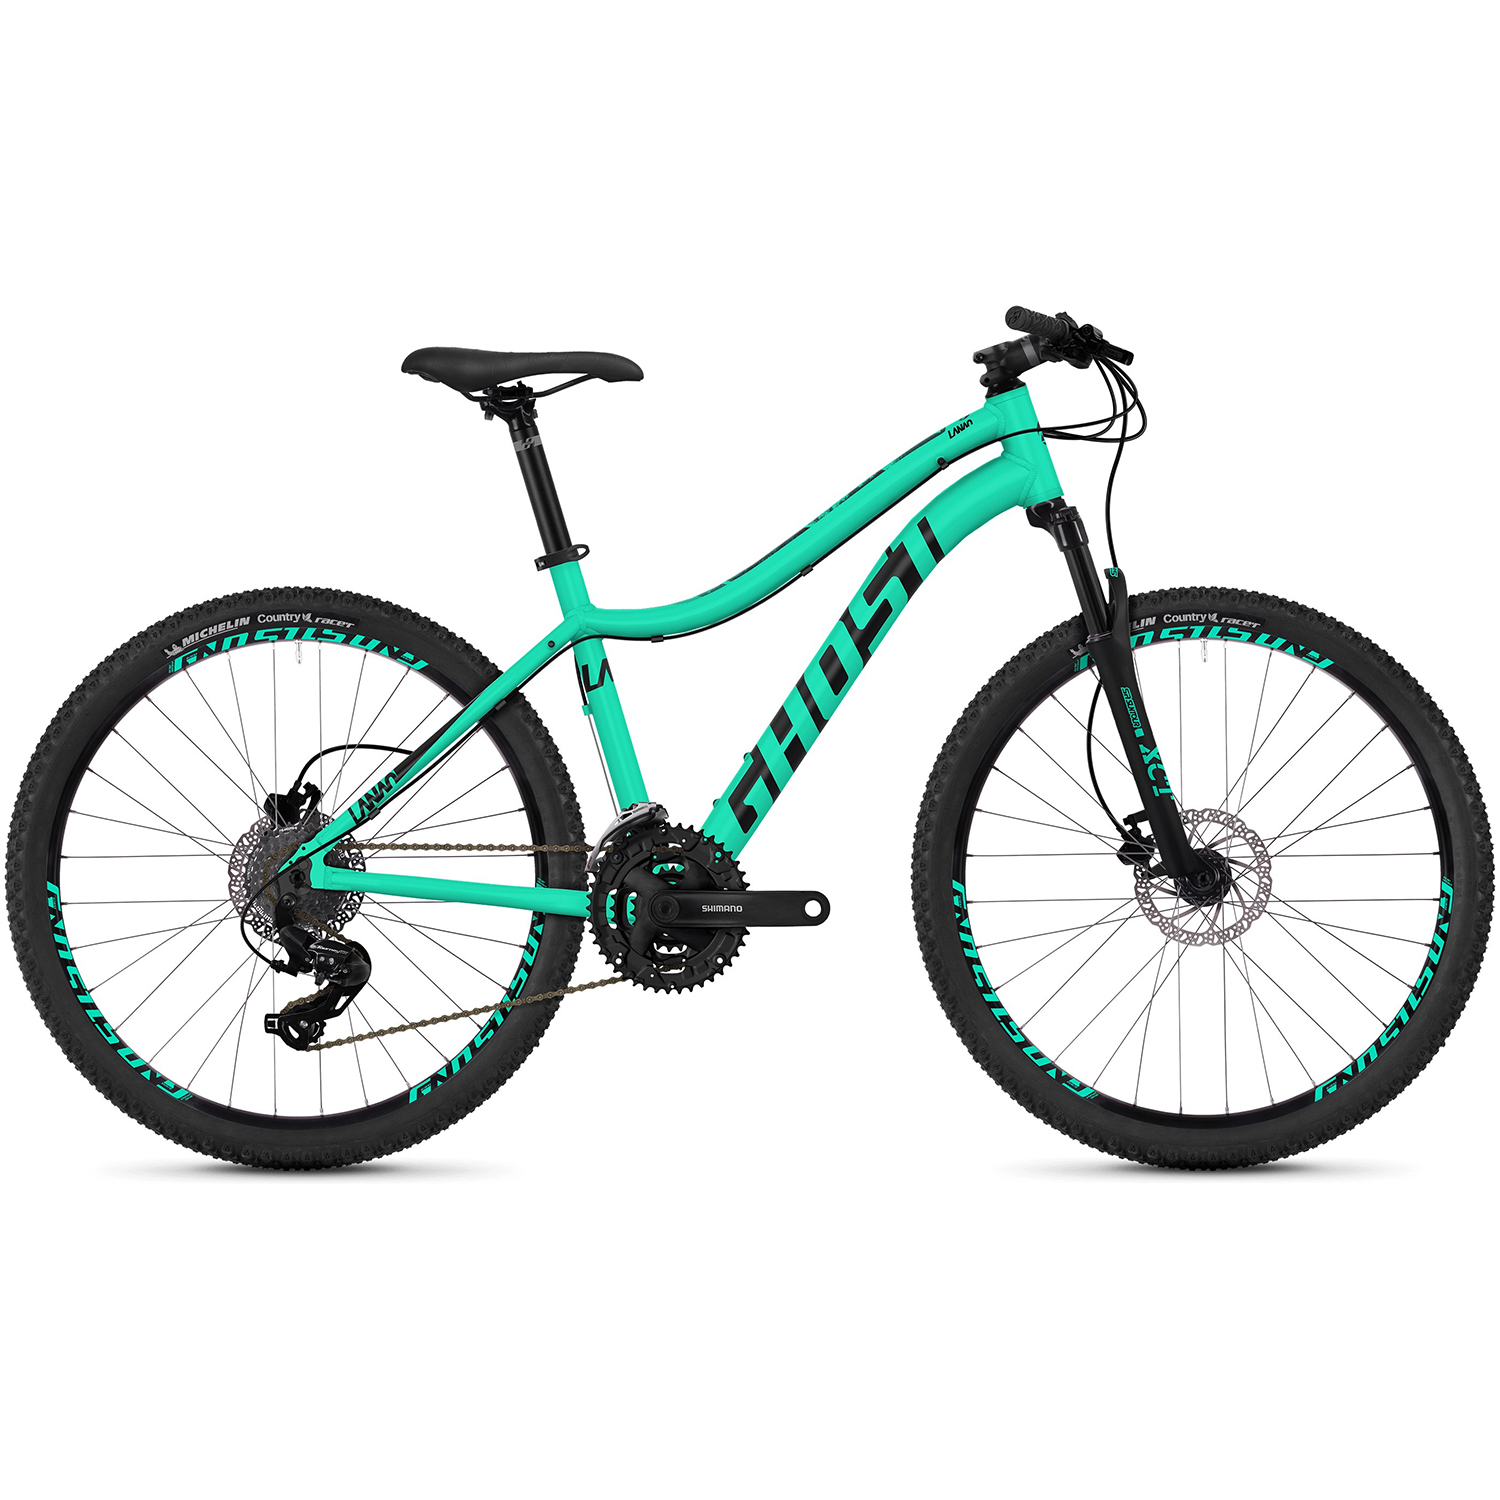 mountainbike 26 zoll hardtail mtb damen fahrrad ghost lanao 1 6 al w ebay. Black Bedroom Furniture Sets. Home Design Ideas